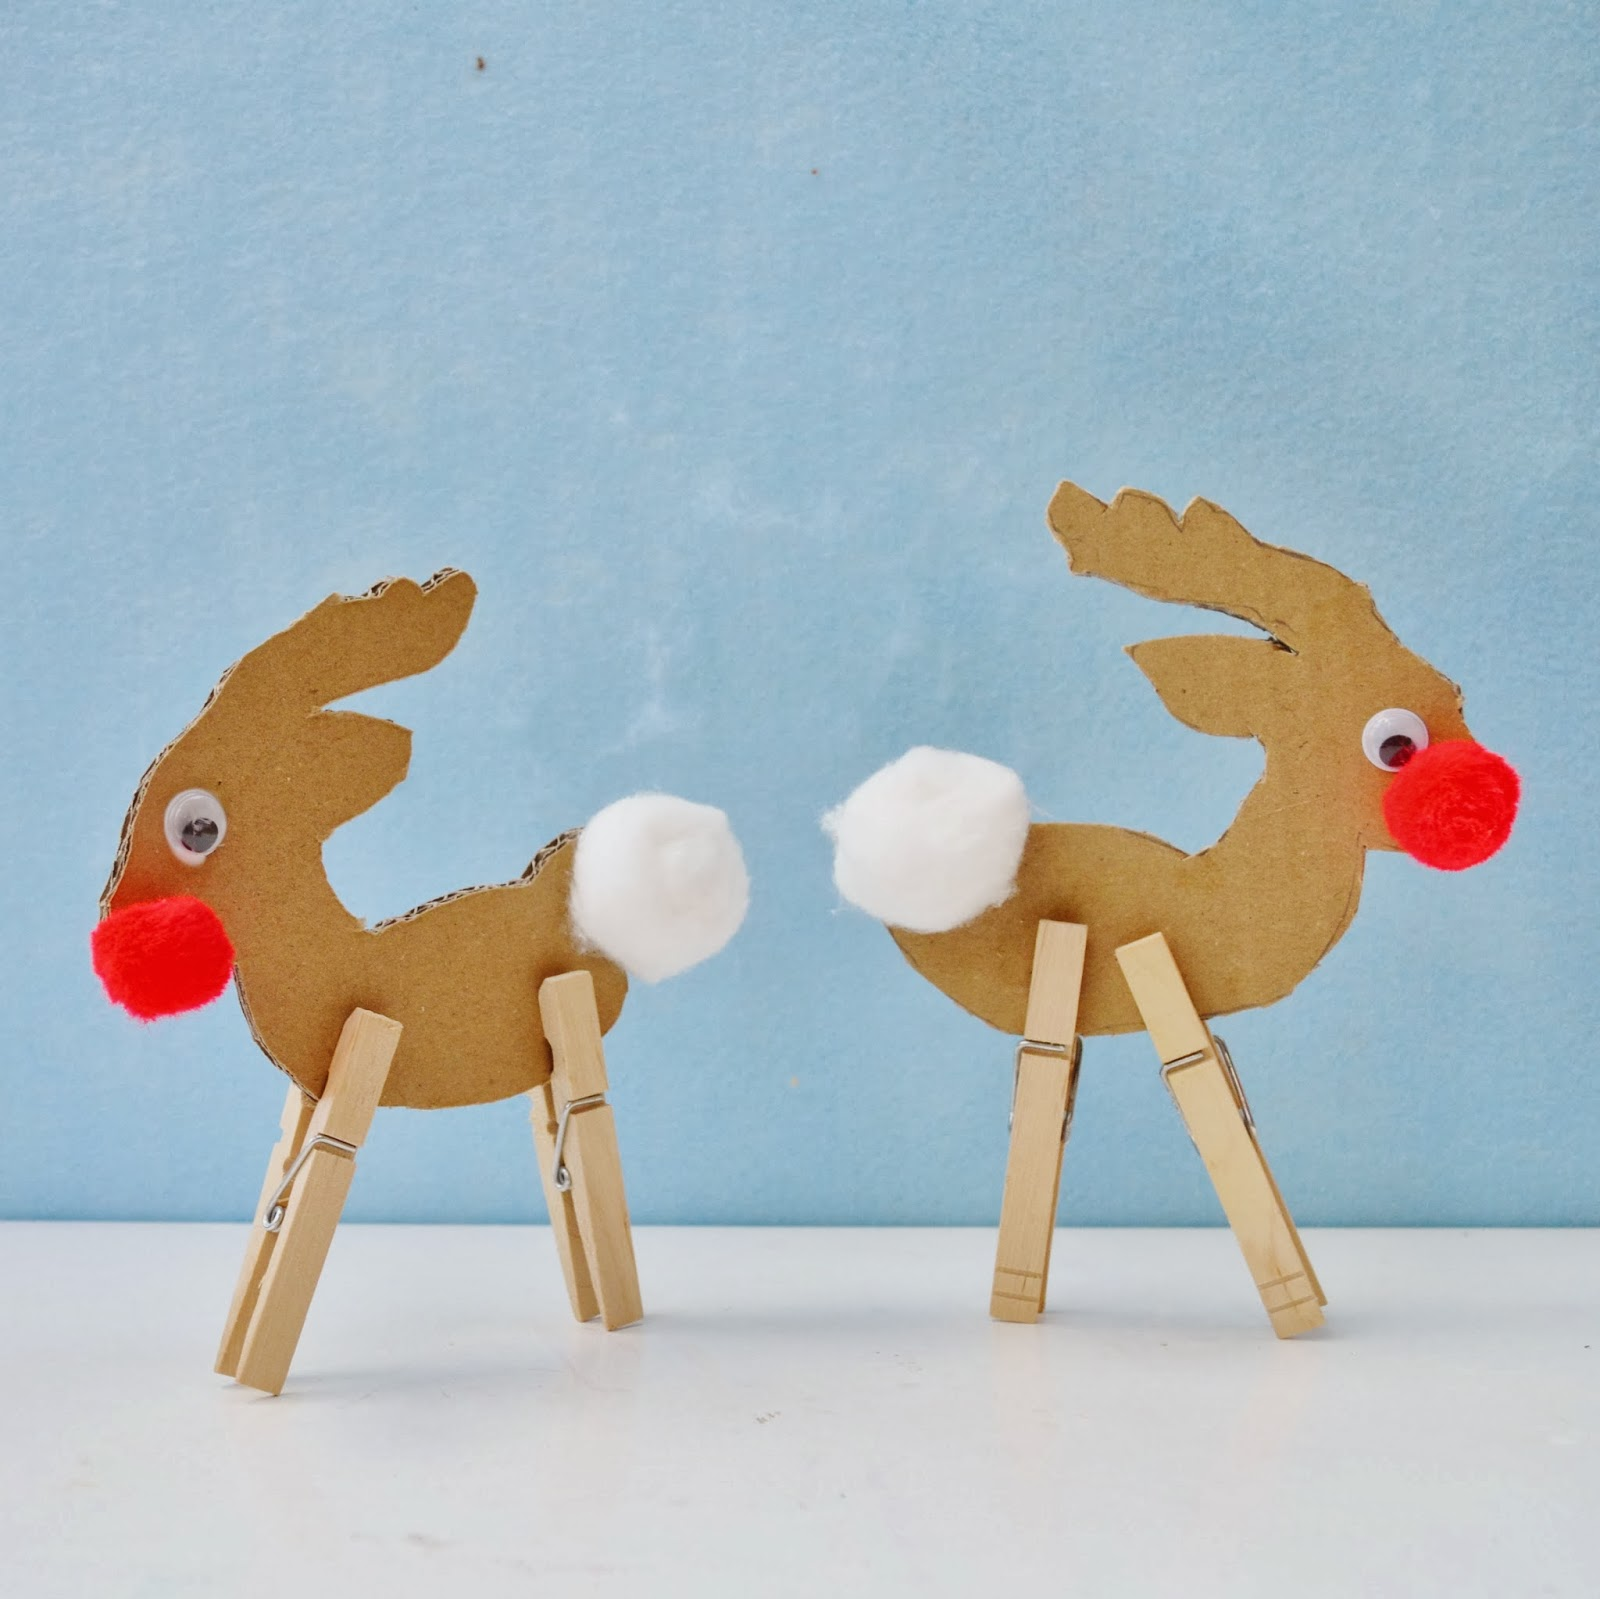 cardboard and clothespin Rudolphs